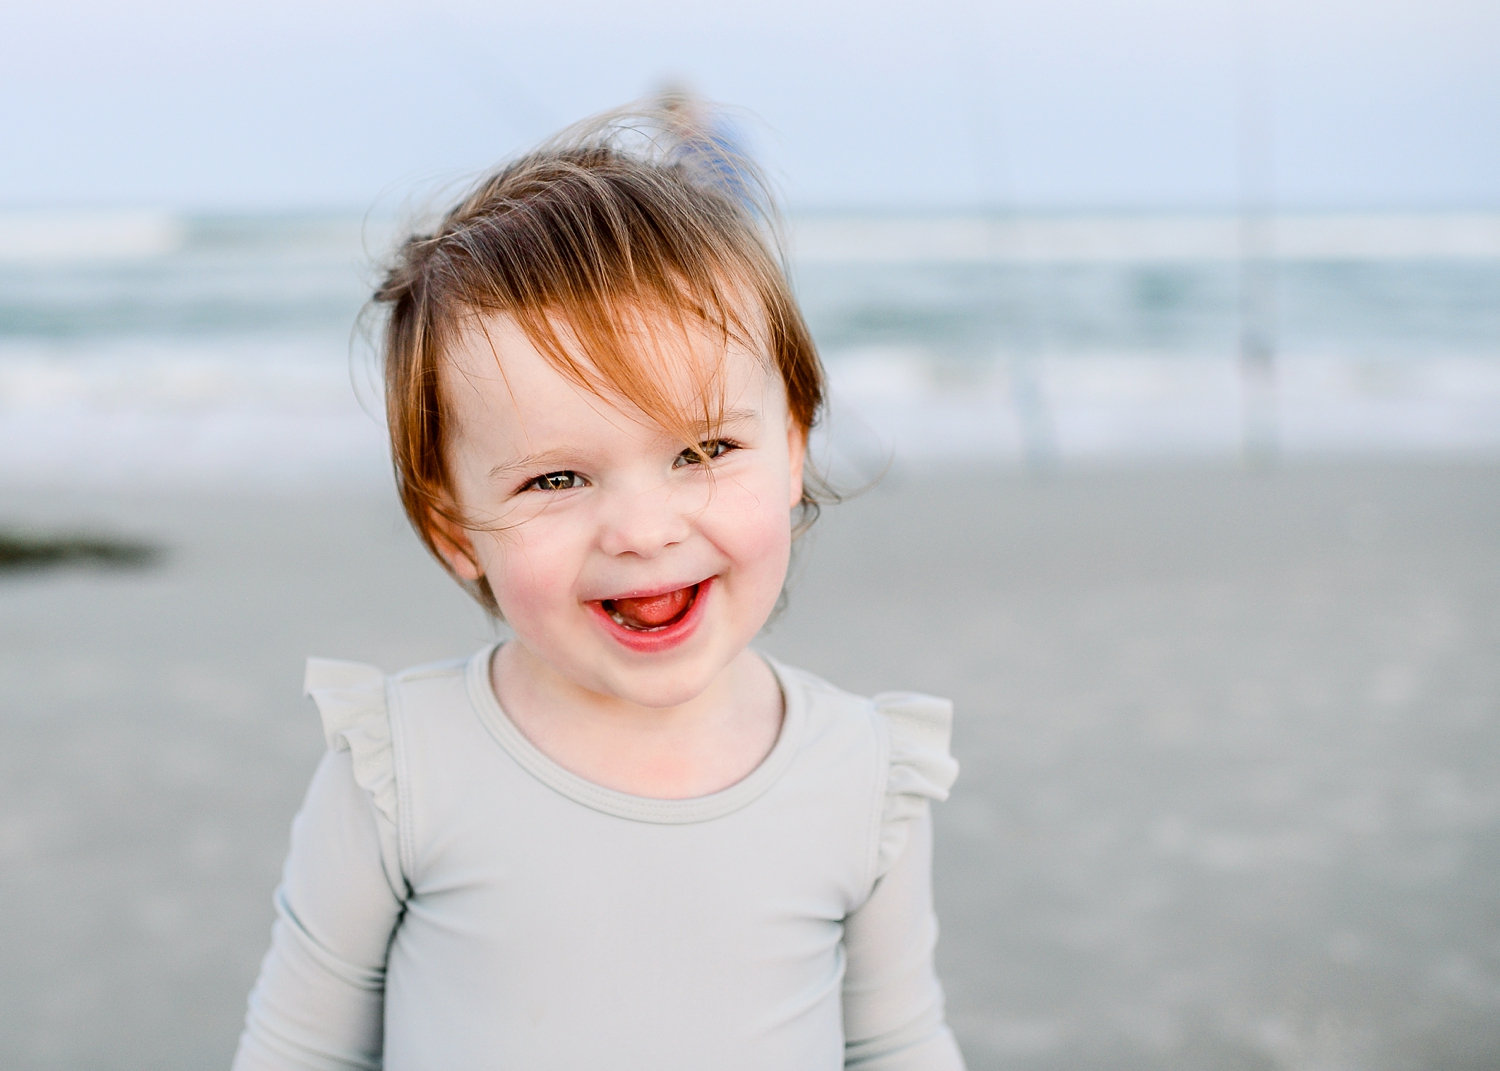 toddler girl smiling at the camera, Florida beach in the background, Ryaphotos